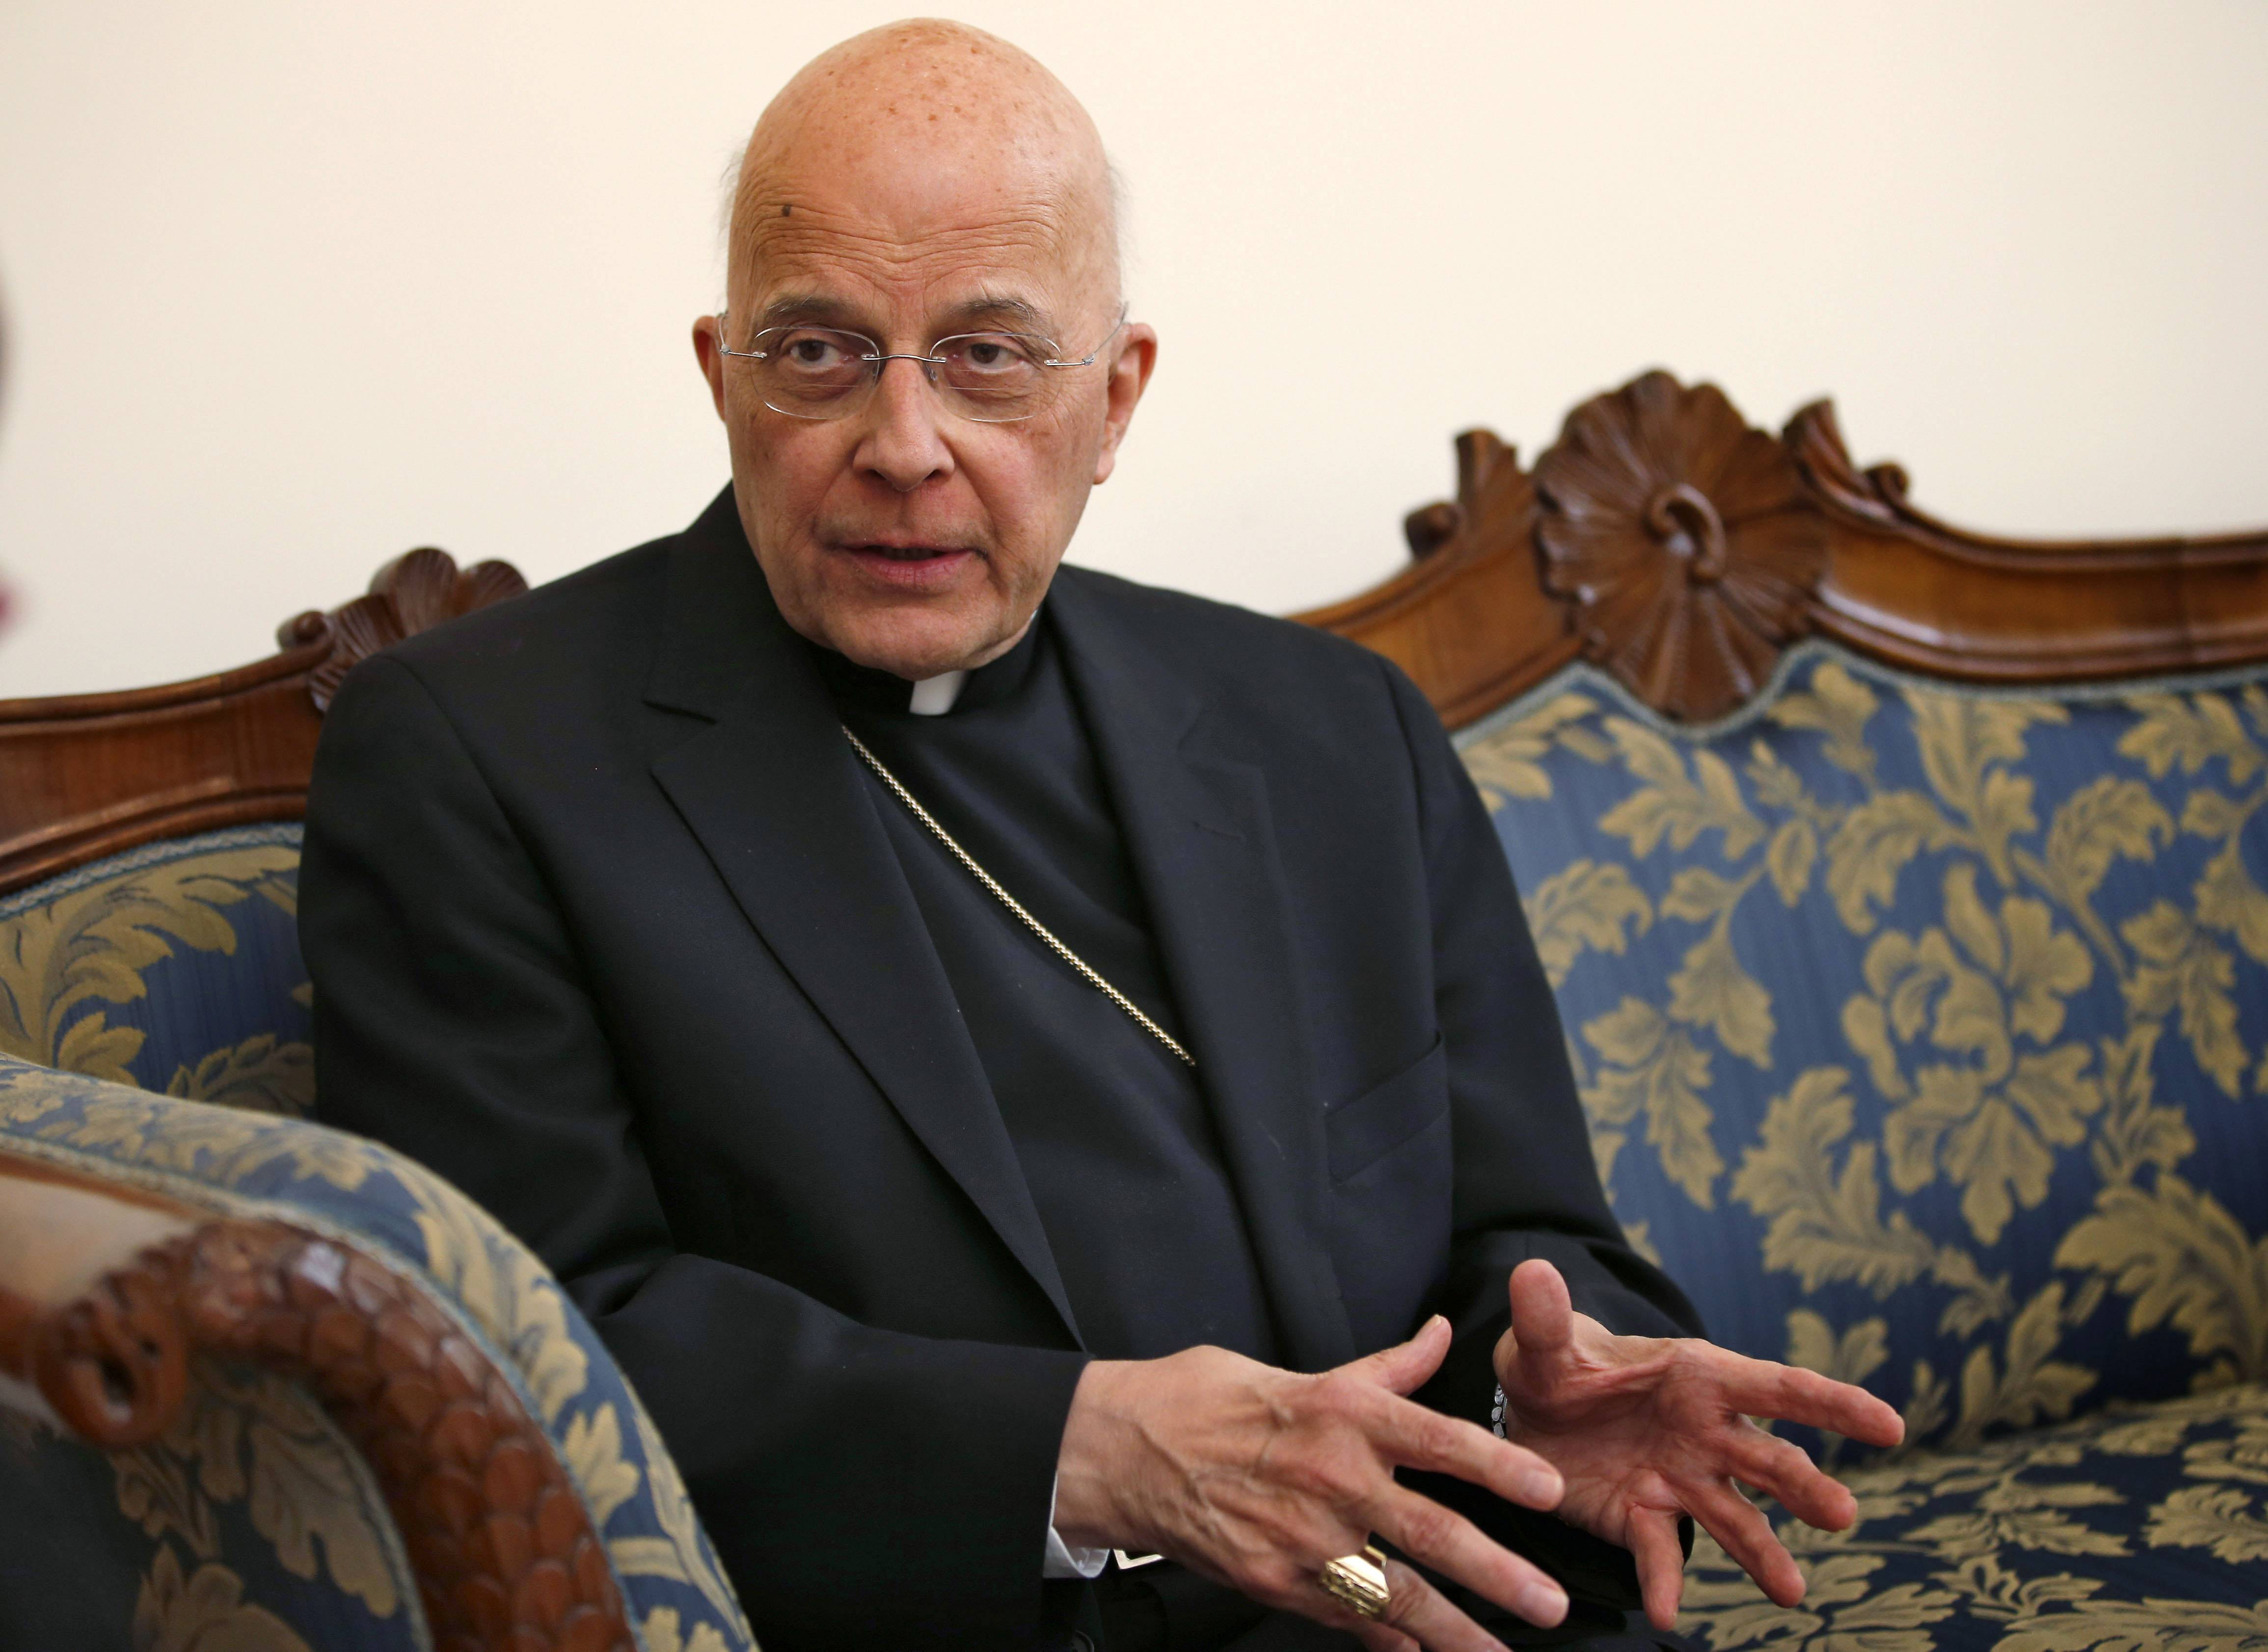 In this March 14, 2013 file photo, Cardinal Francis George speaks during an interview at the North American College in Rome. A spokesperson for the Chicago Archdiocese said Cardinal Francis George is expected to be released from a hospital later this week.